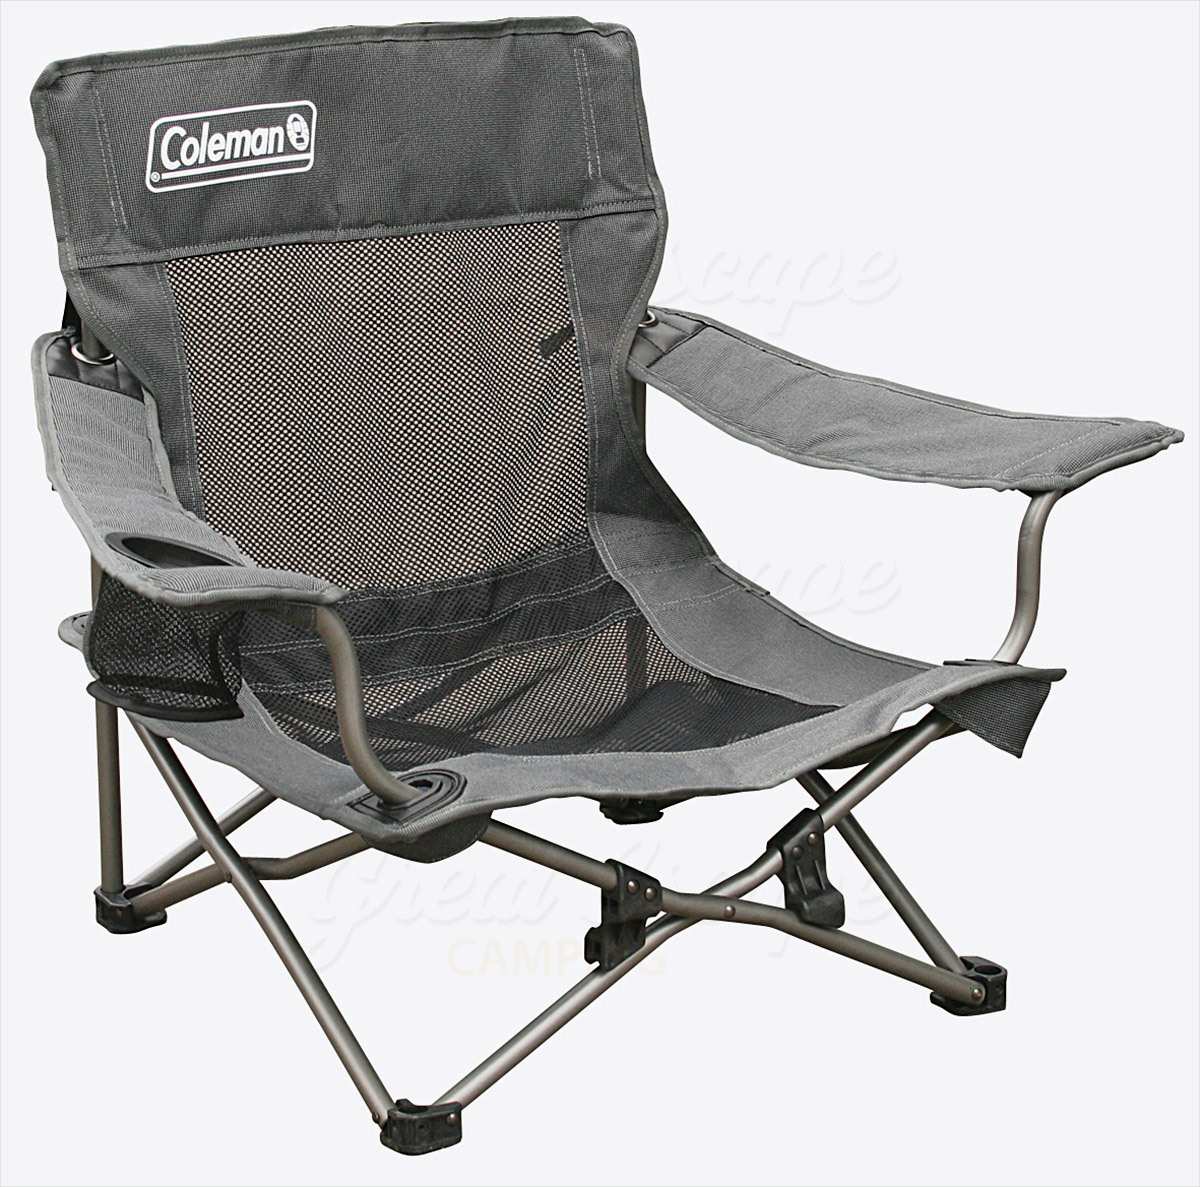 coleman camping oversized quad chair with cooler garden glider covers deluxe mesh event great escape